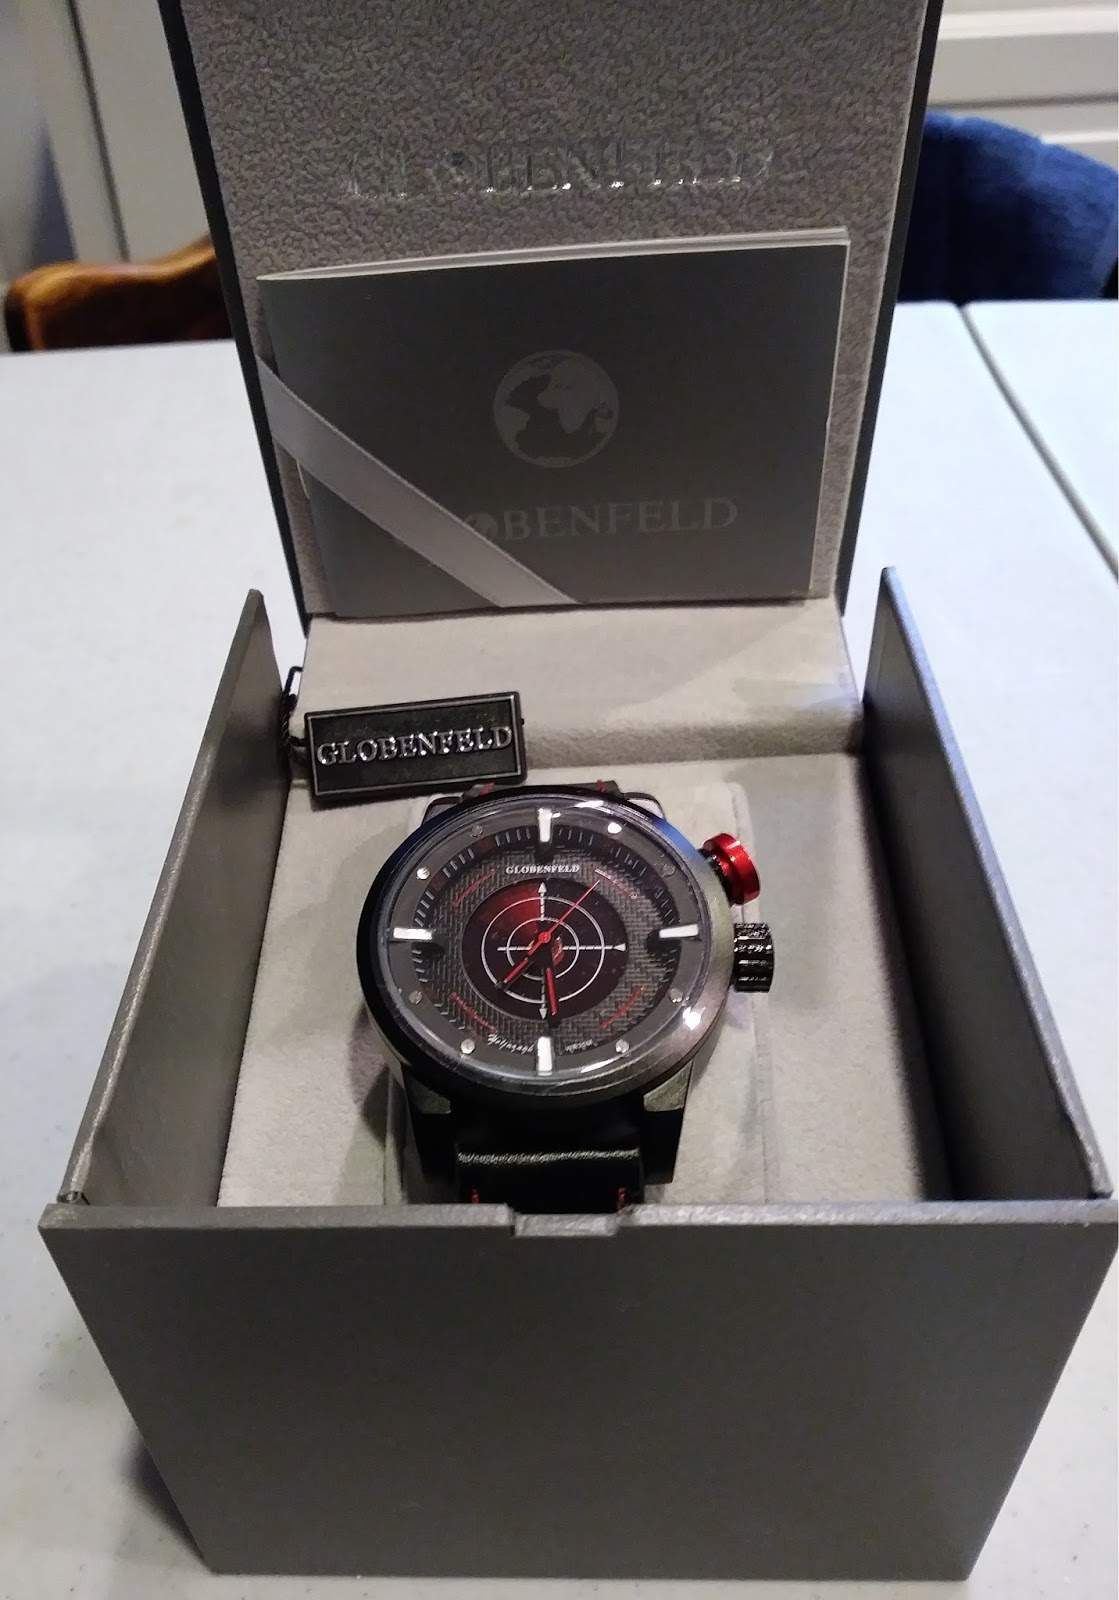 6b0f8d4ae I recently had the opportunity to work with Globenfeld and review their  Heligraph men's wrist watch. This is a unique piece that would be perfect  for any ...